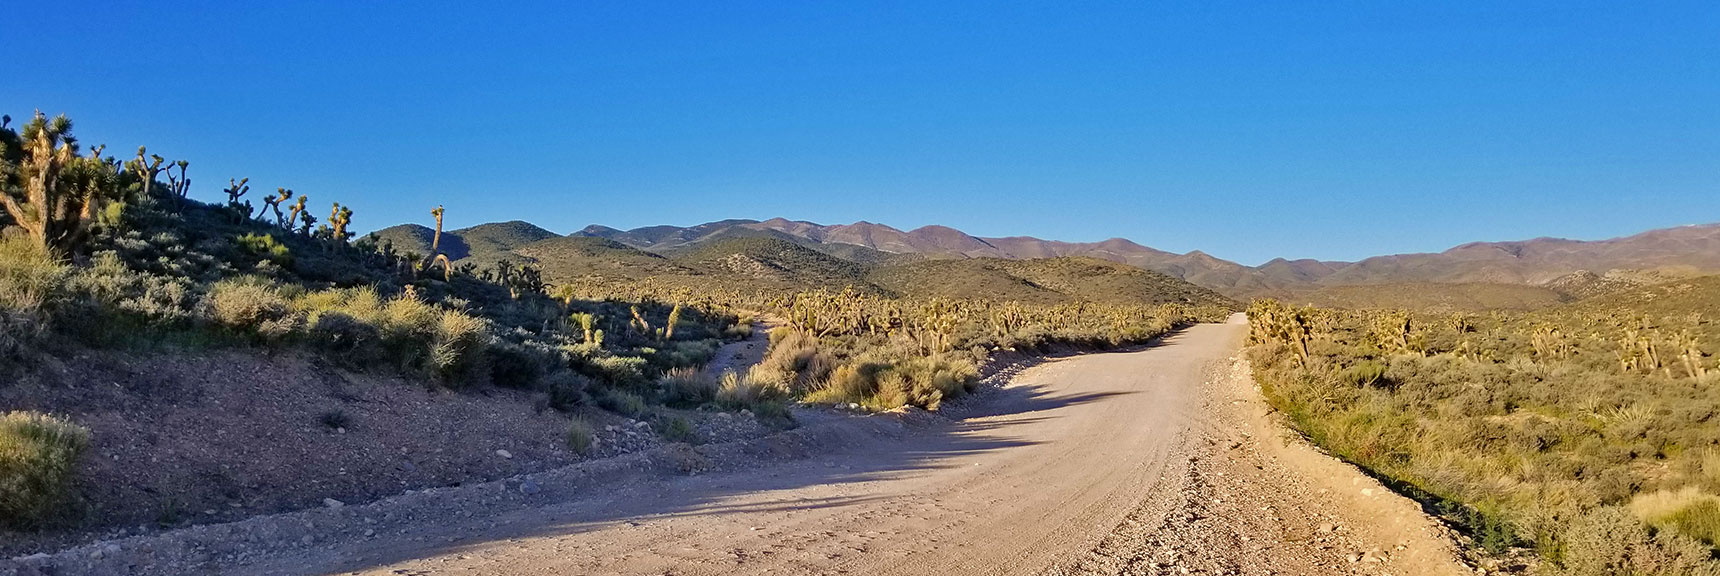 Harris Springs Road on the Way to El Padre Mountain, La Madre Mountains Wilderness, Nevada